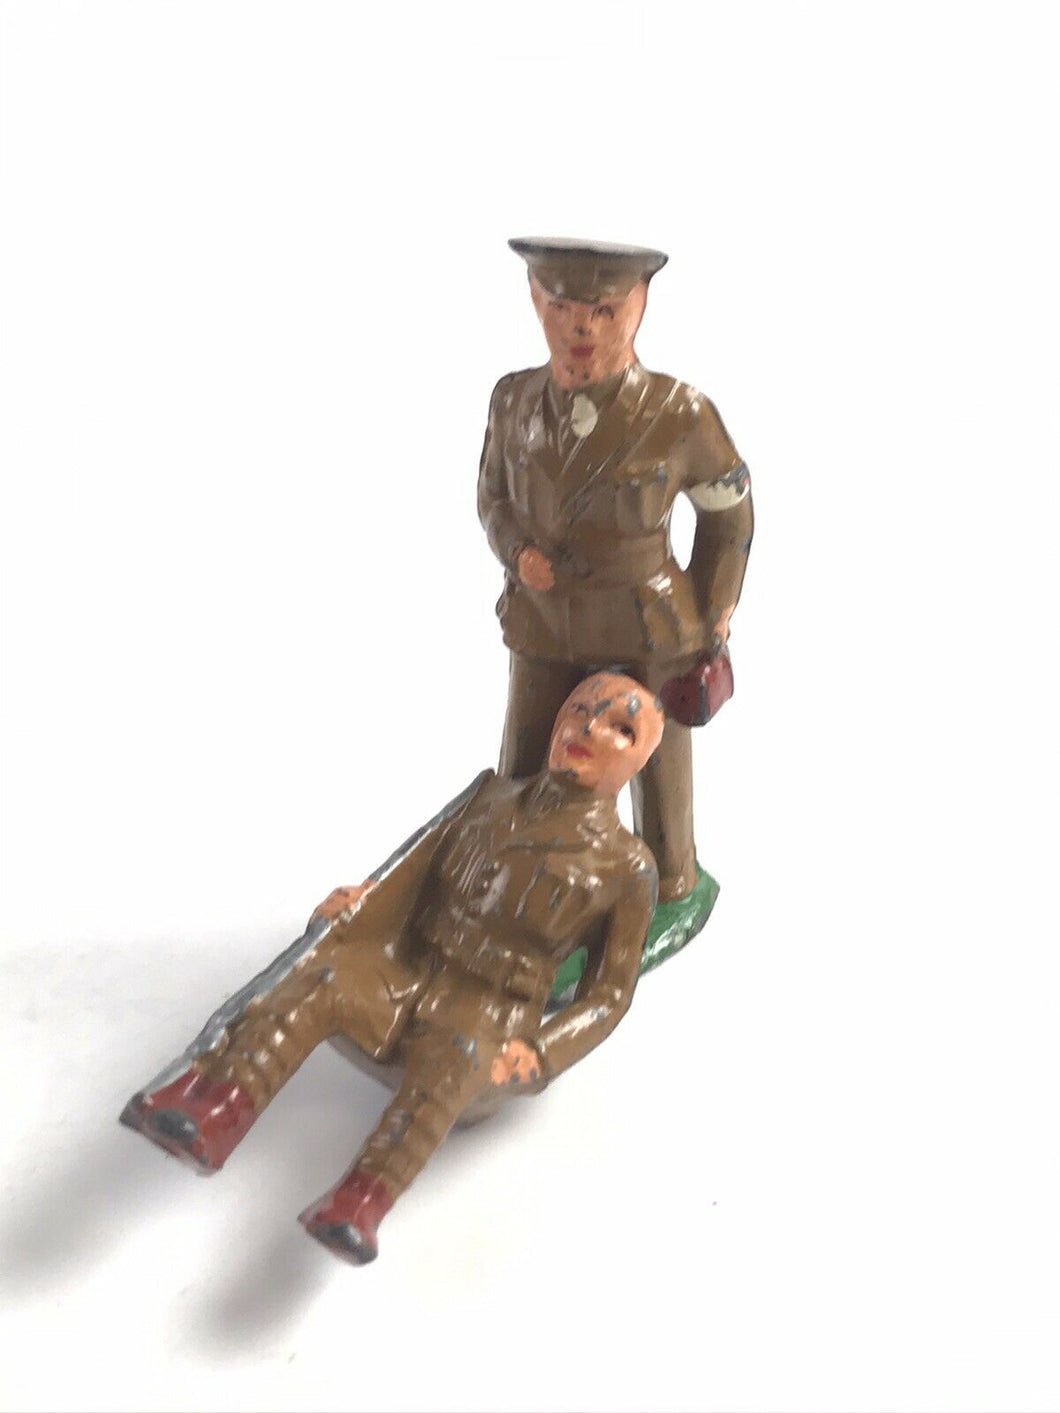 Vintage Lead Barclay Solidier Figurines (2) - 5748